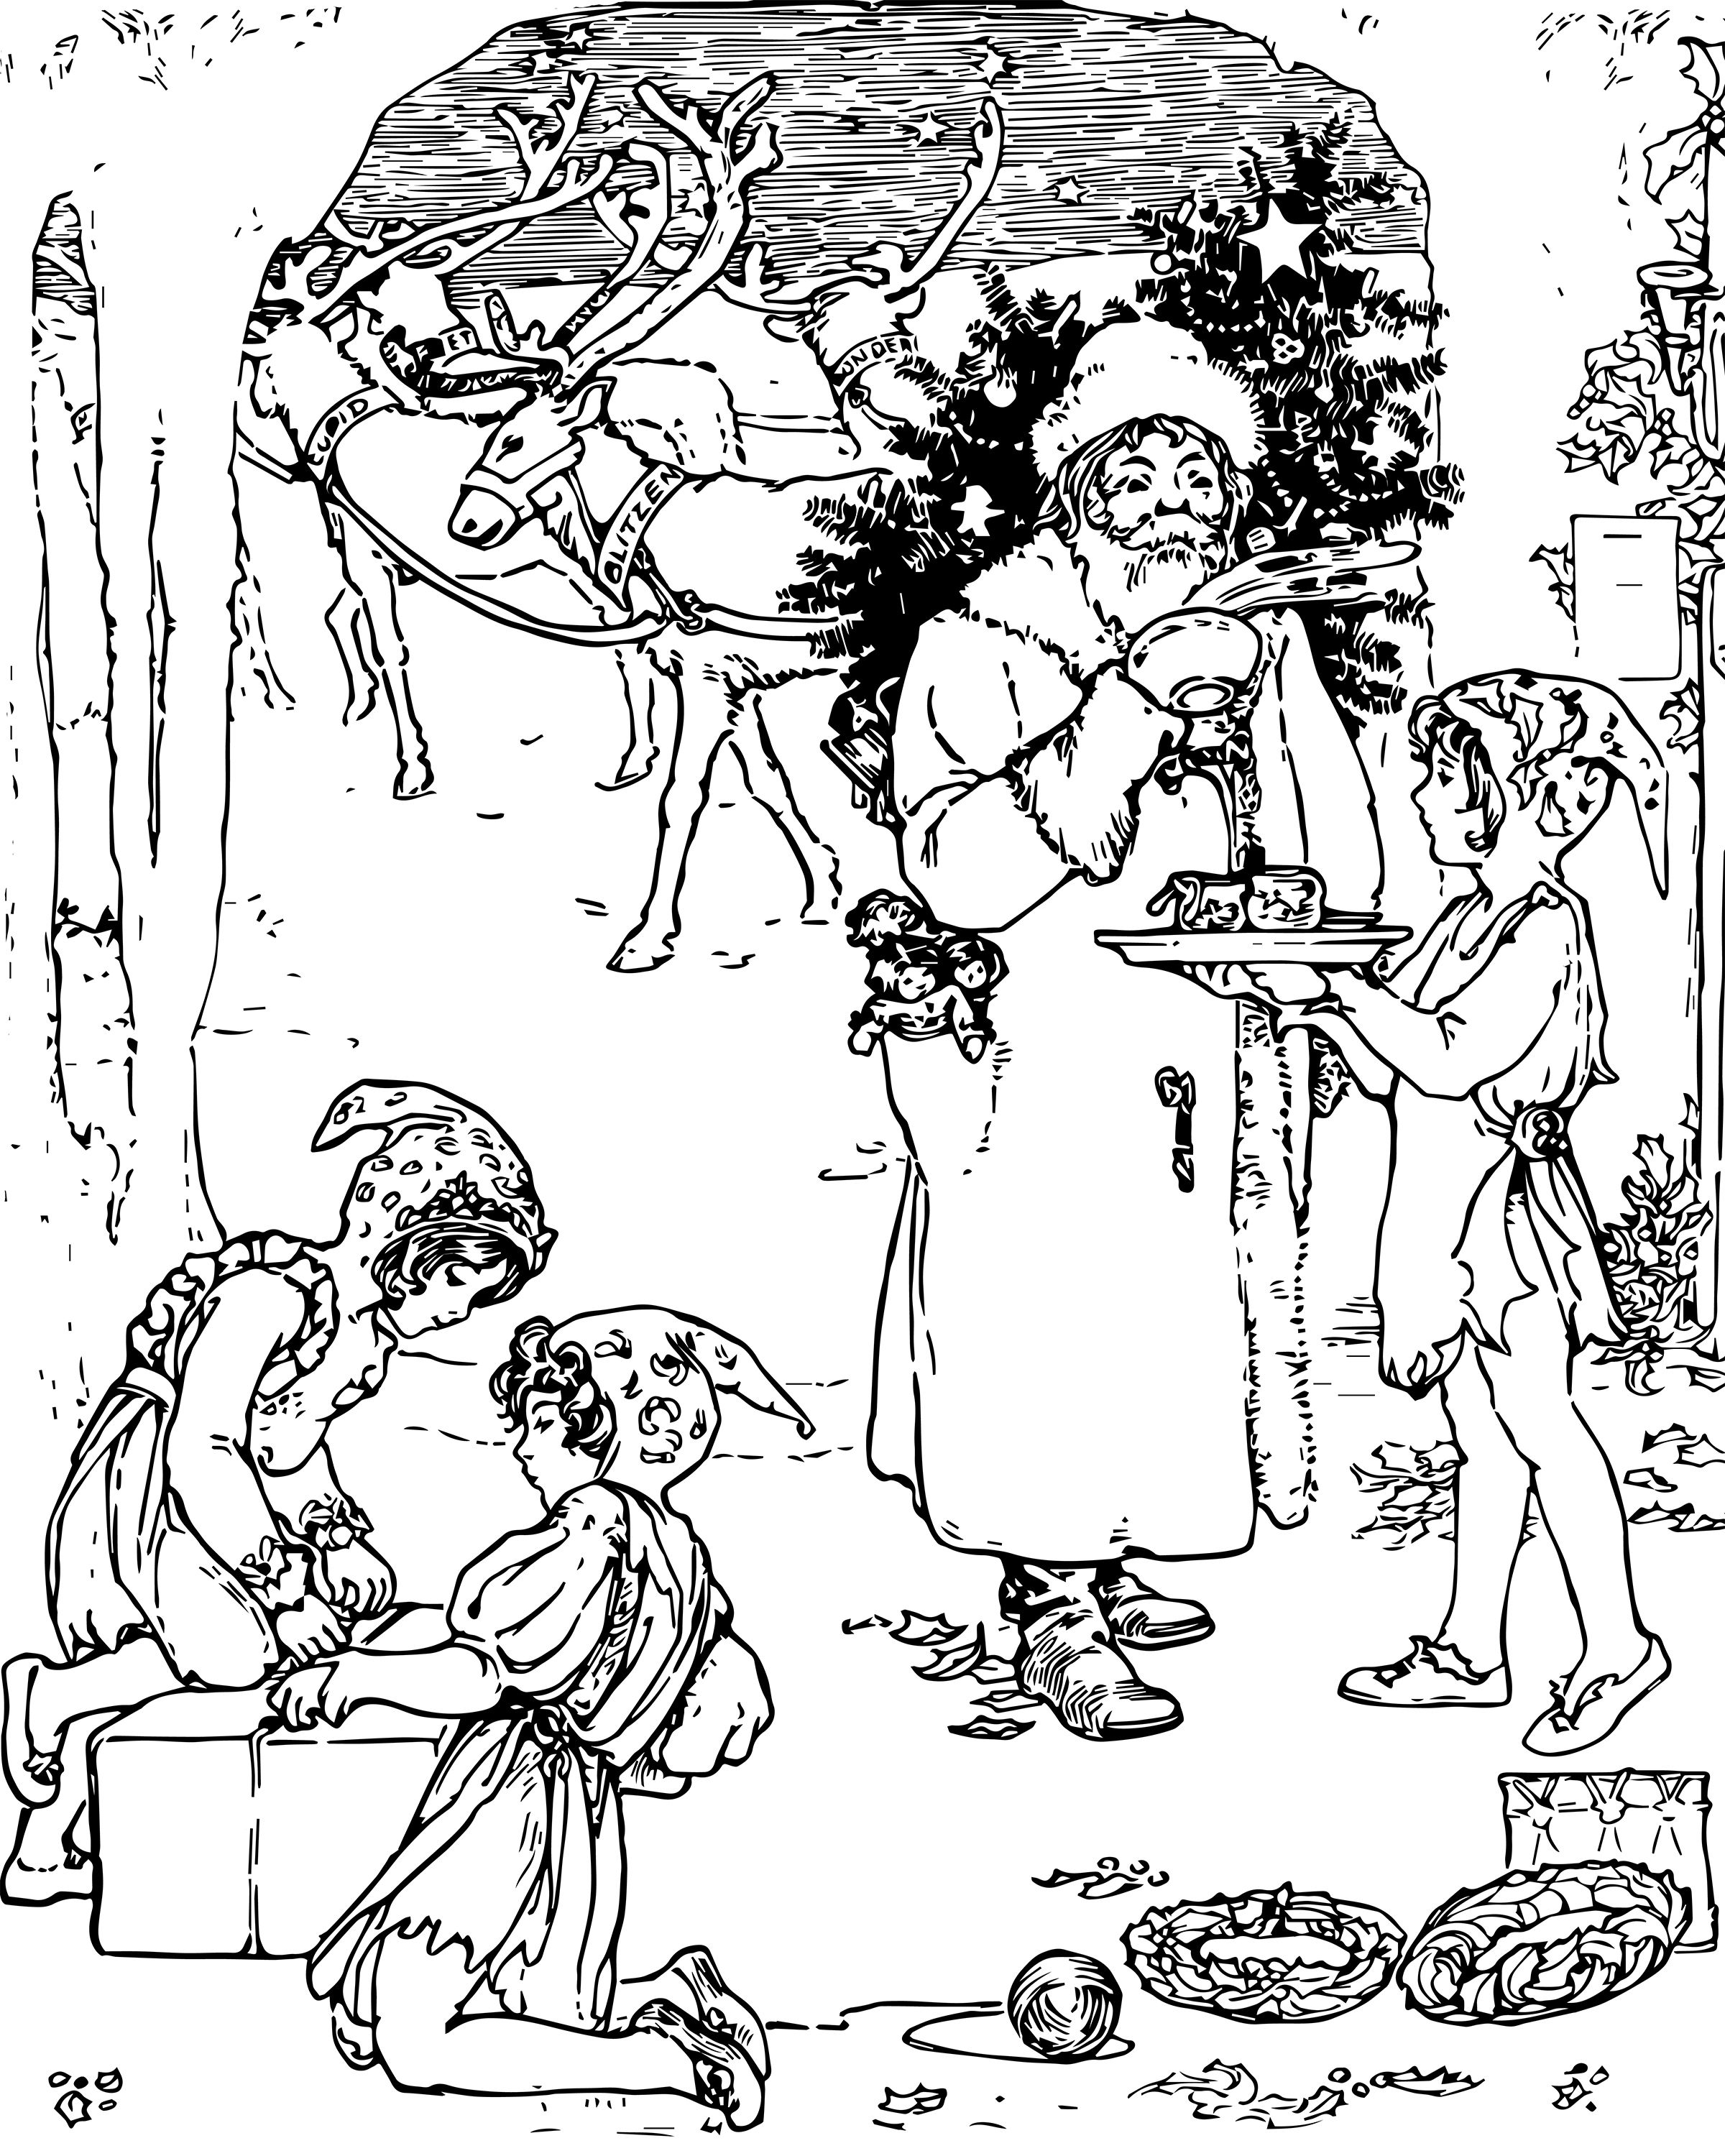 free vintage christmas coloring page for adults santa reindeer and elfs coloring pages for